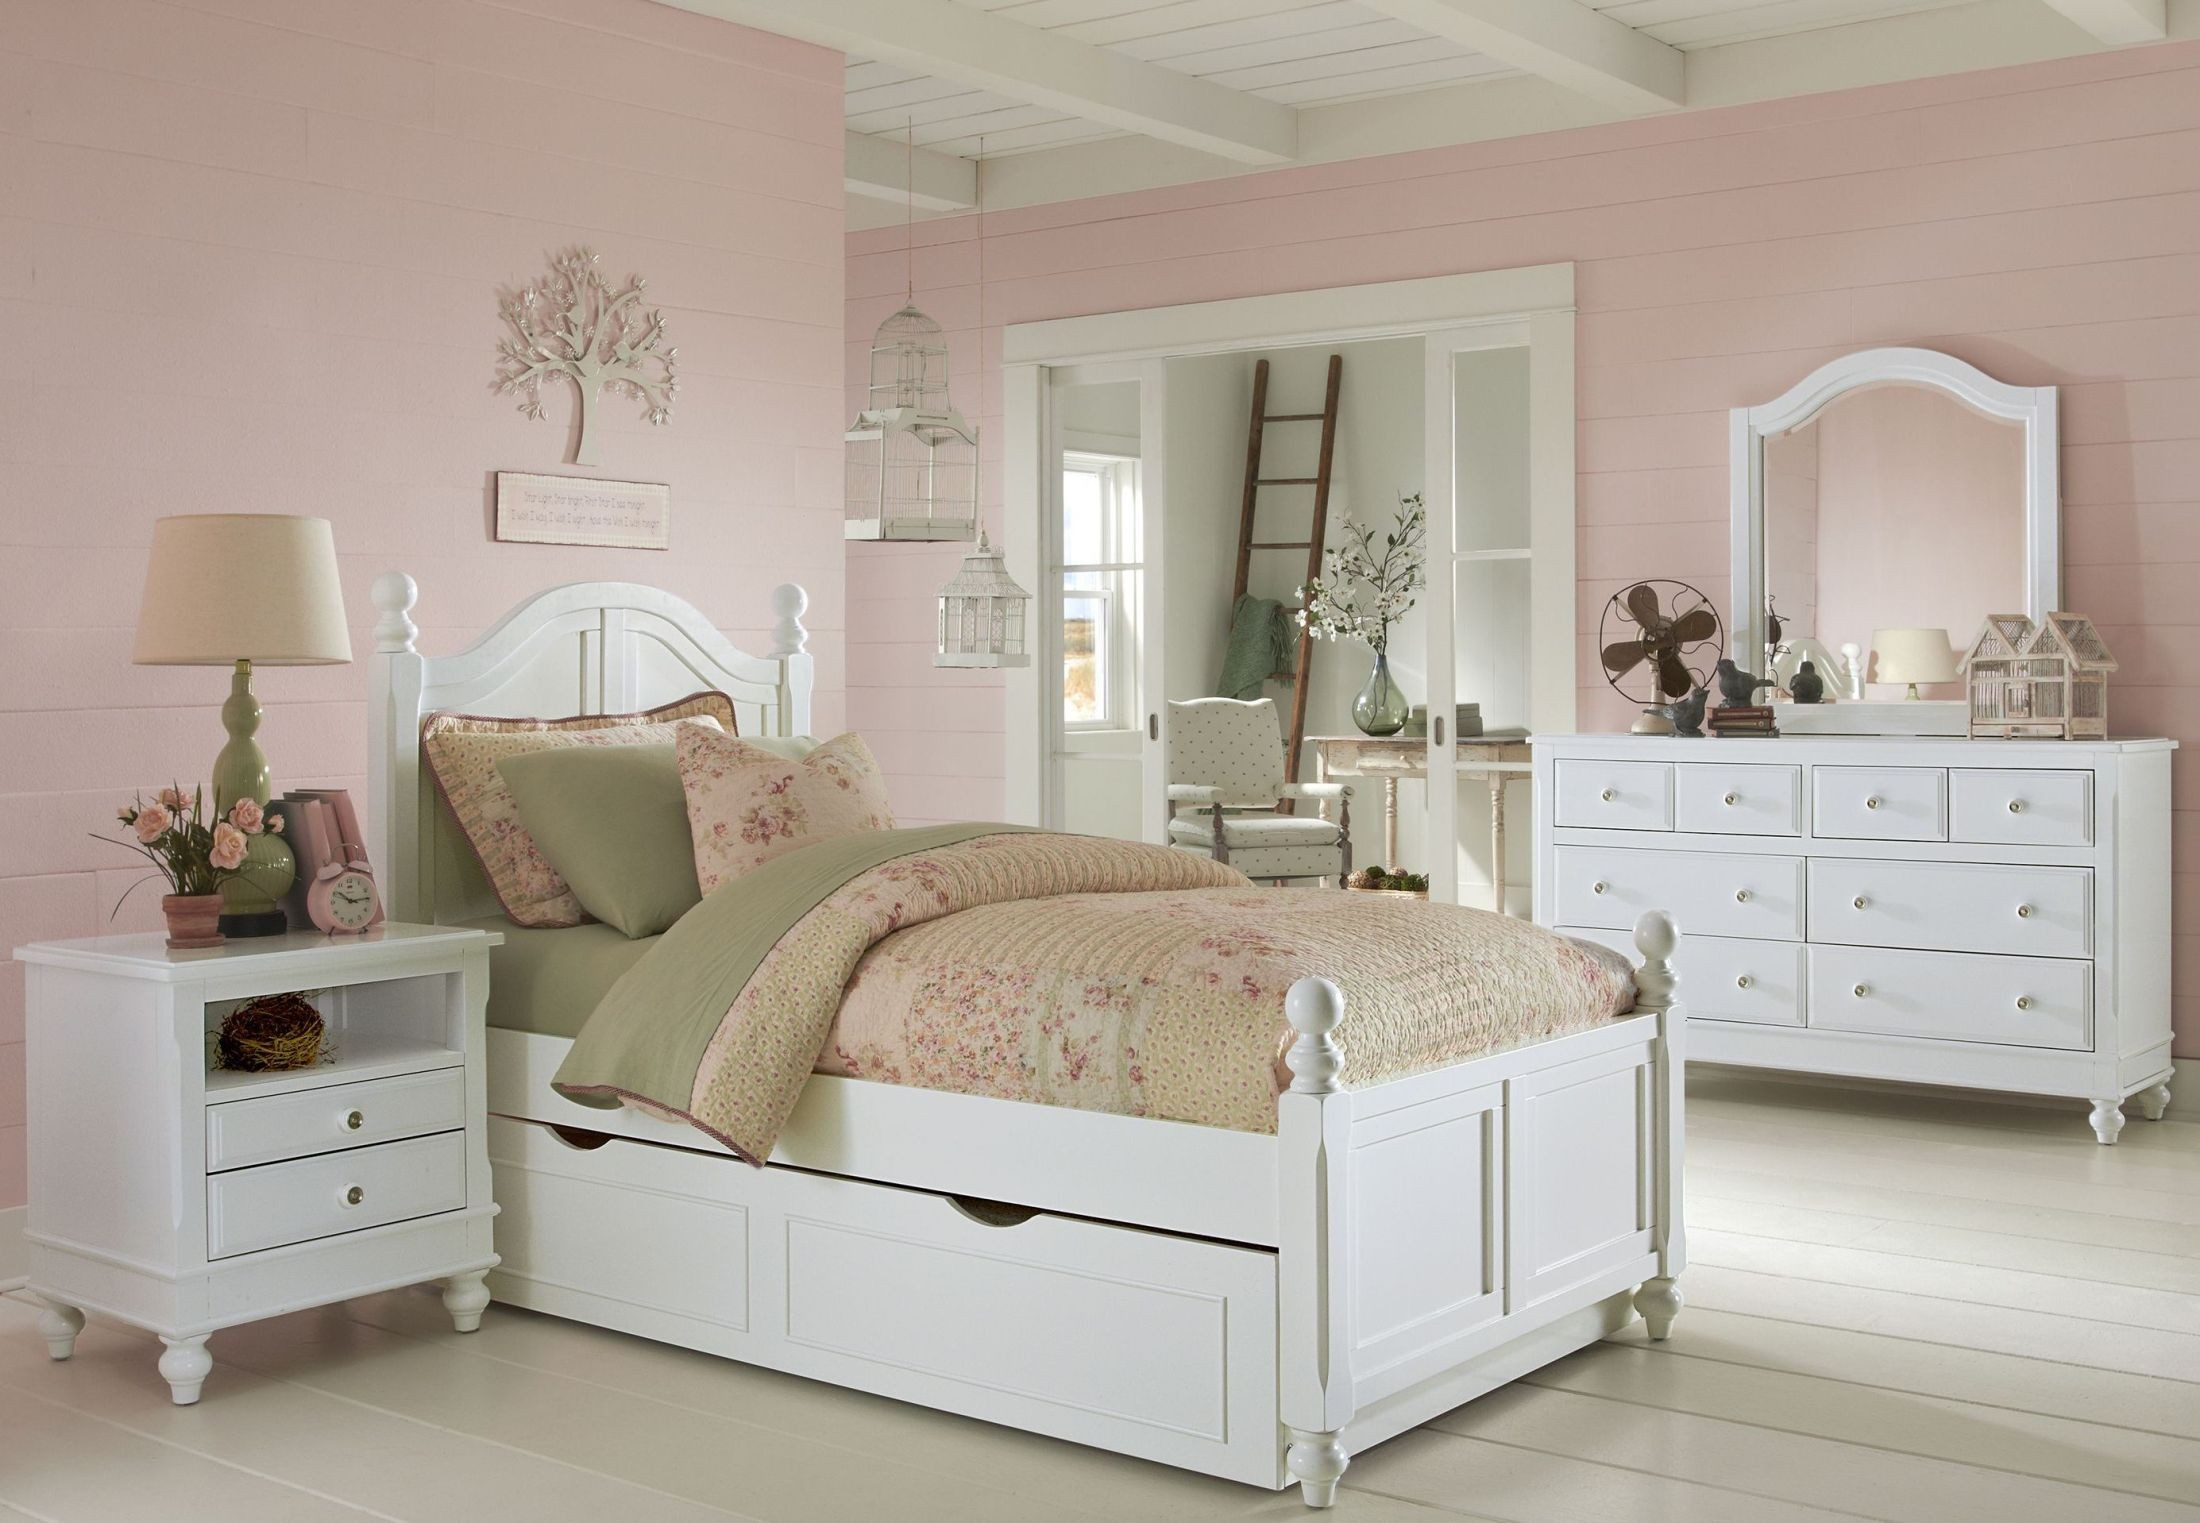 Lake house white payton youth panel bedroom set with trundle 1010nt ne kids Lake home bedroom furniture